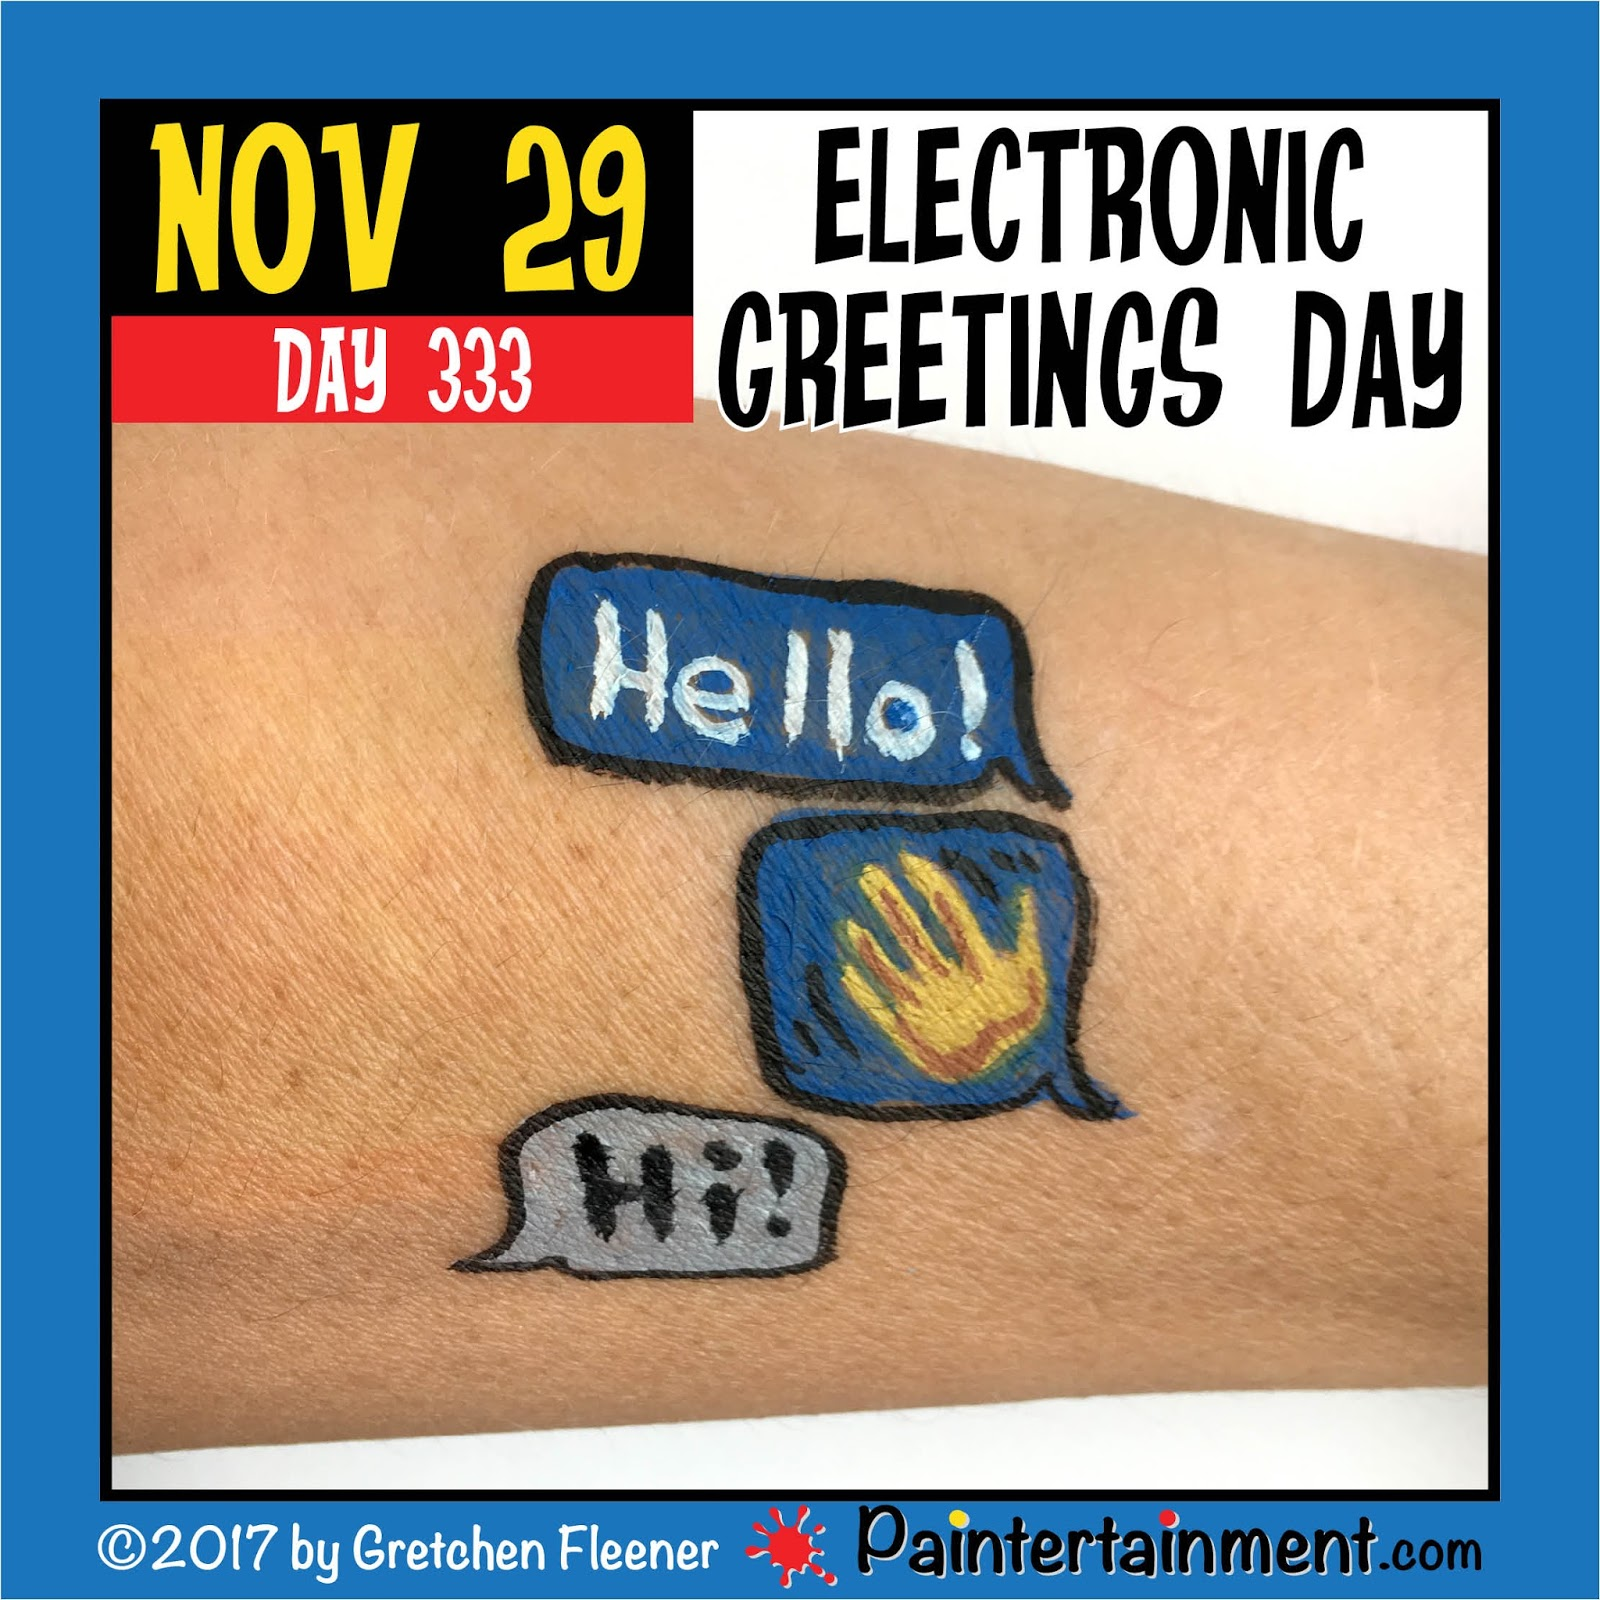 Paintertainment Celebrate Day 333 Electronic Greetings Day